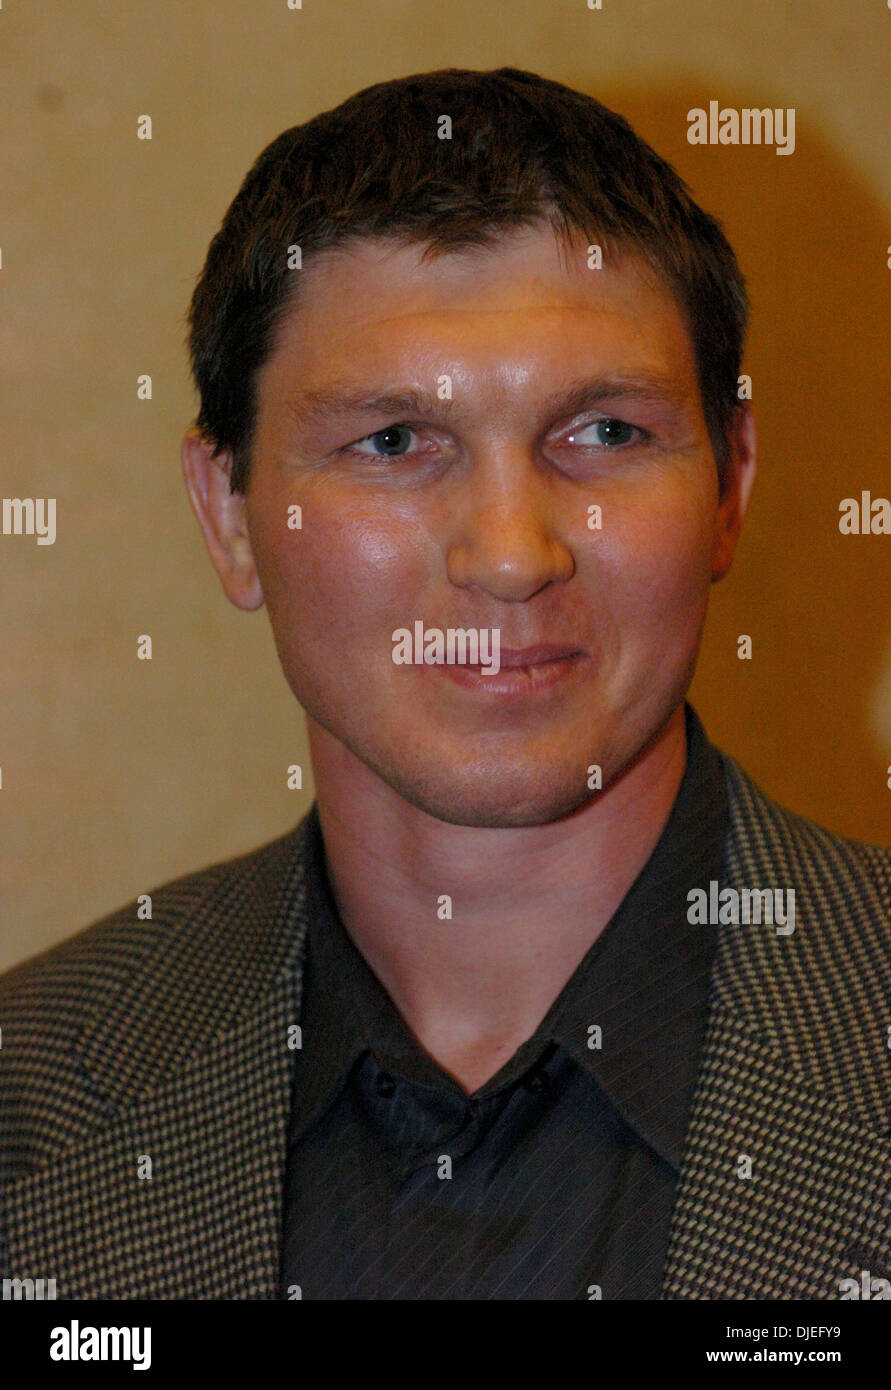 Oct 16, 2004; Commerce, CA, USA; Former IBF Cruiserweight Champion VASSILY JIROV at The 25th Annual World Boxing Hall of Fame Banquet held at The Commerce Casino. - Stock Image